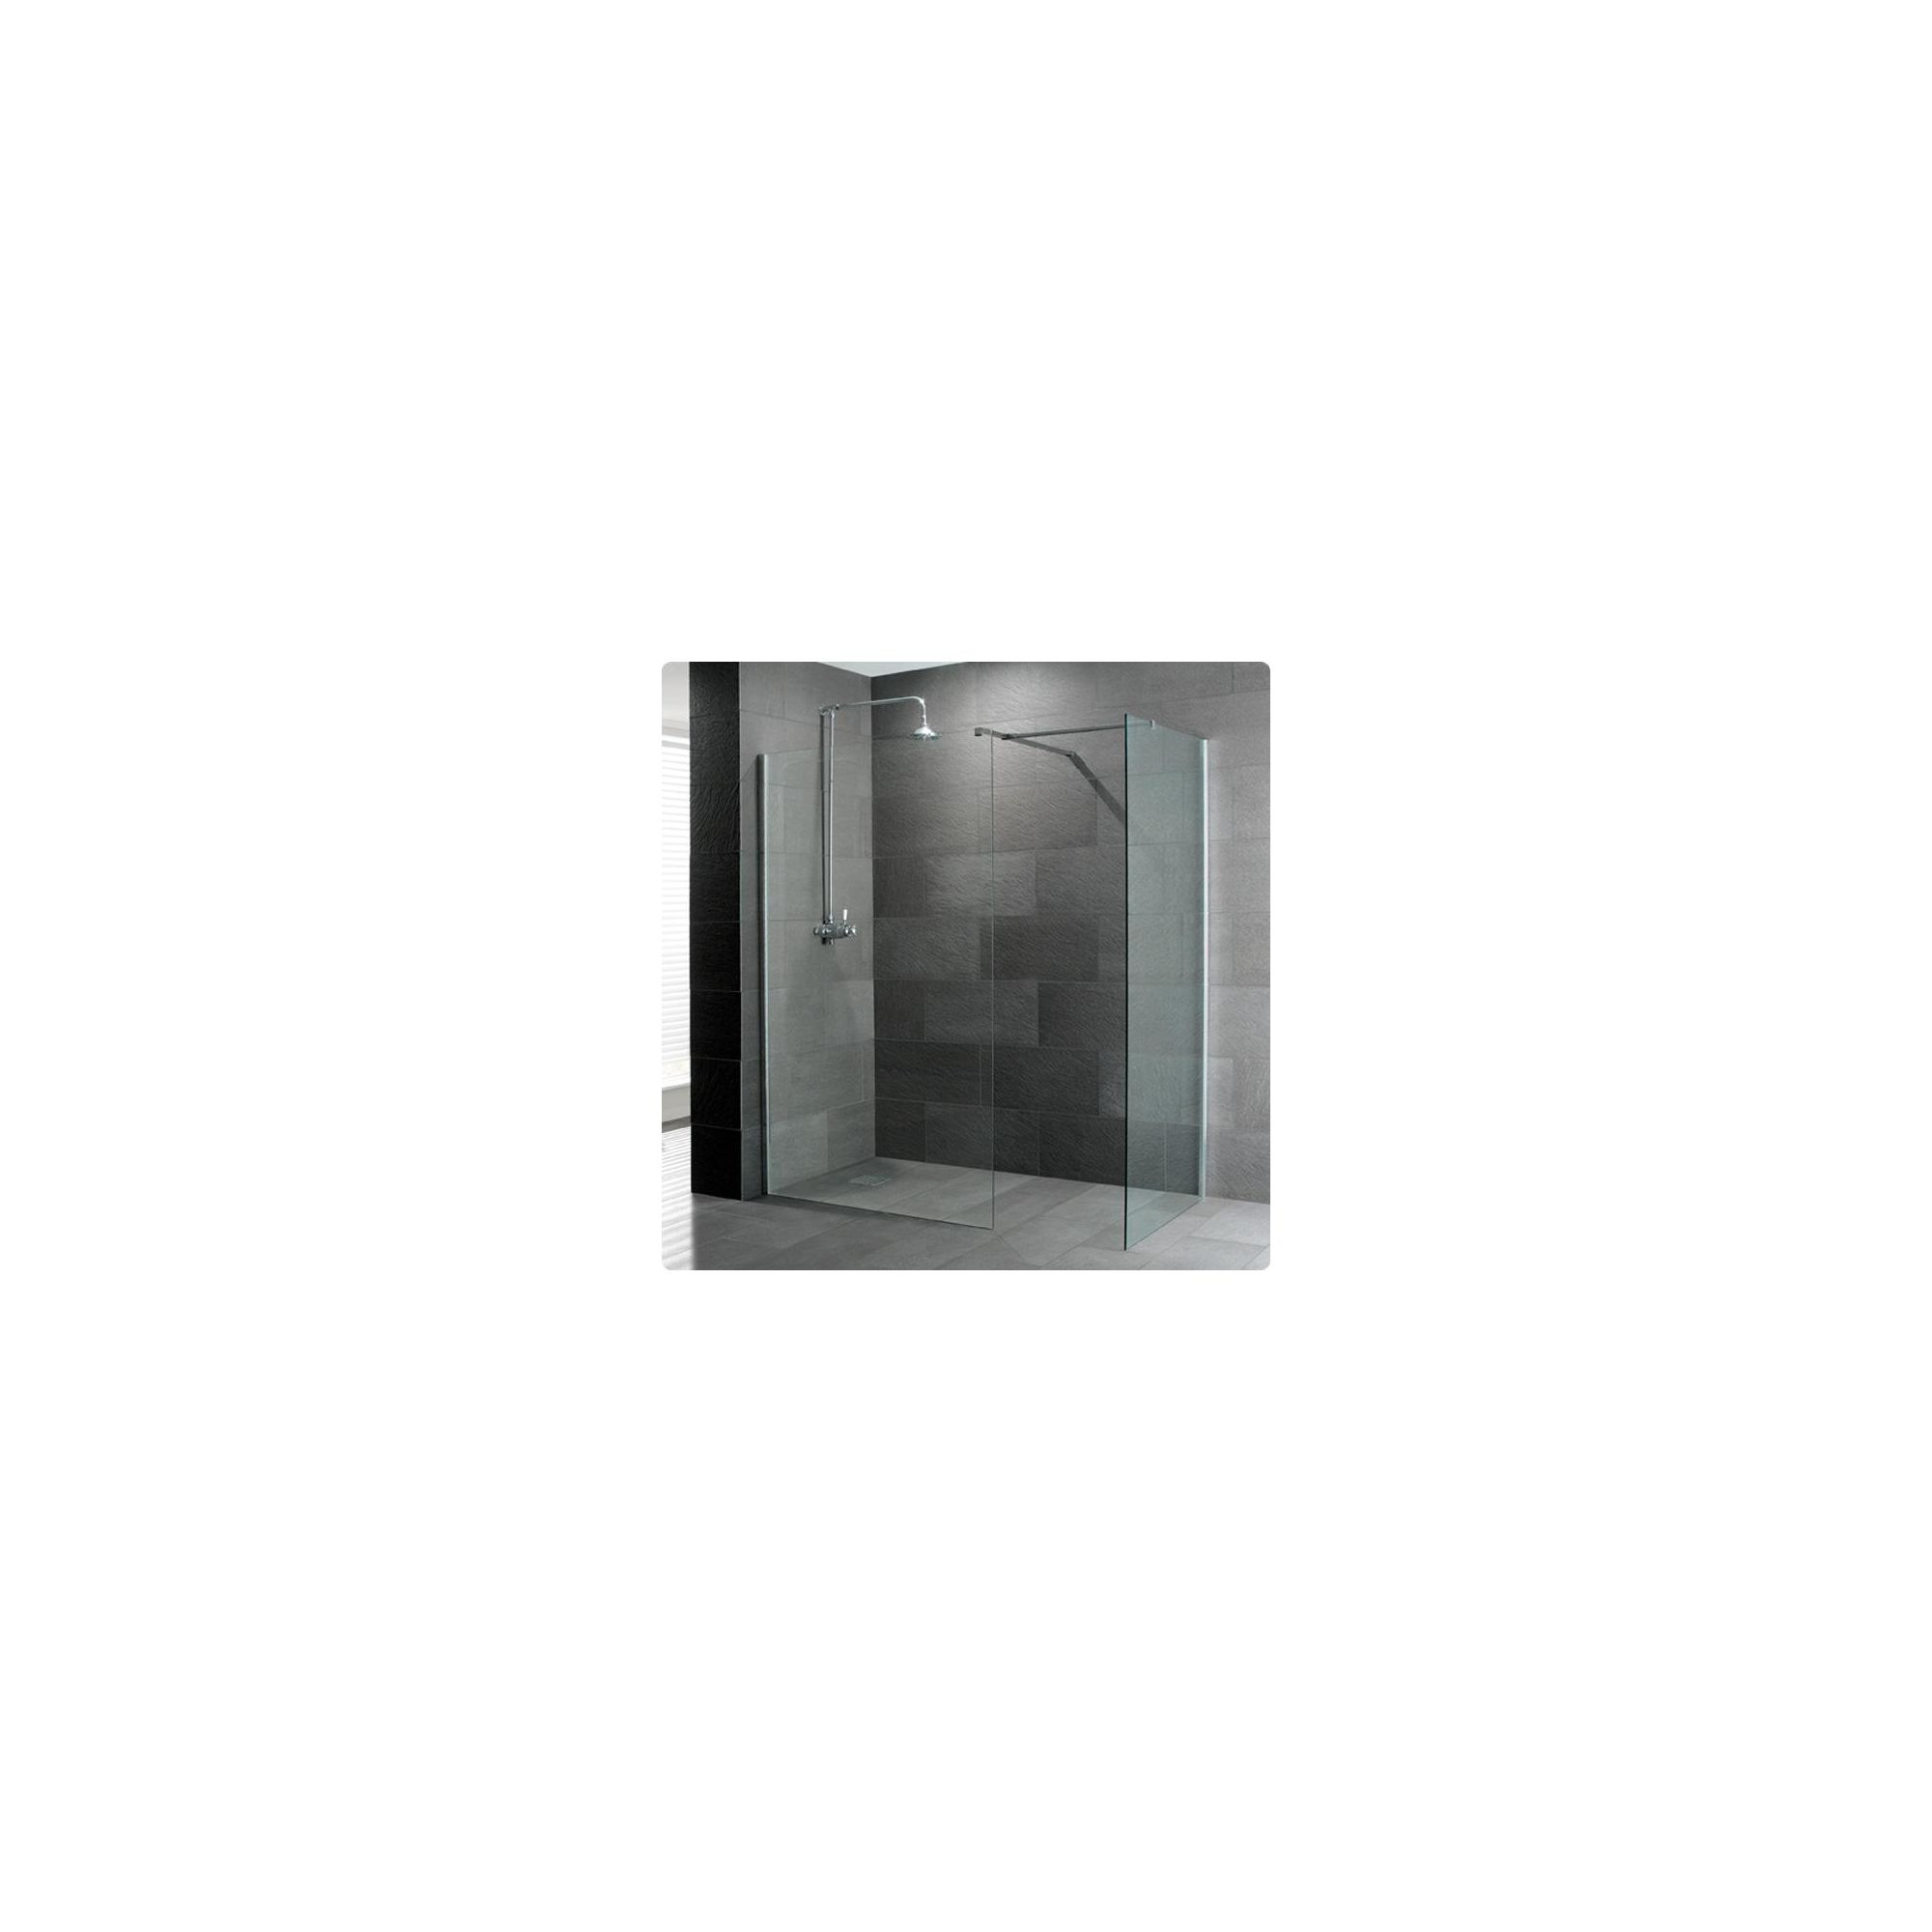 Duchy Supreme Silver Walk-In Shower Enclosure 1700mm x 900mm, Standard Tray, 8mm Glass at Tesco Direct